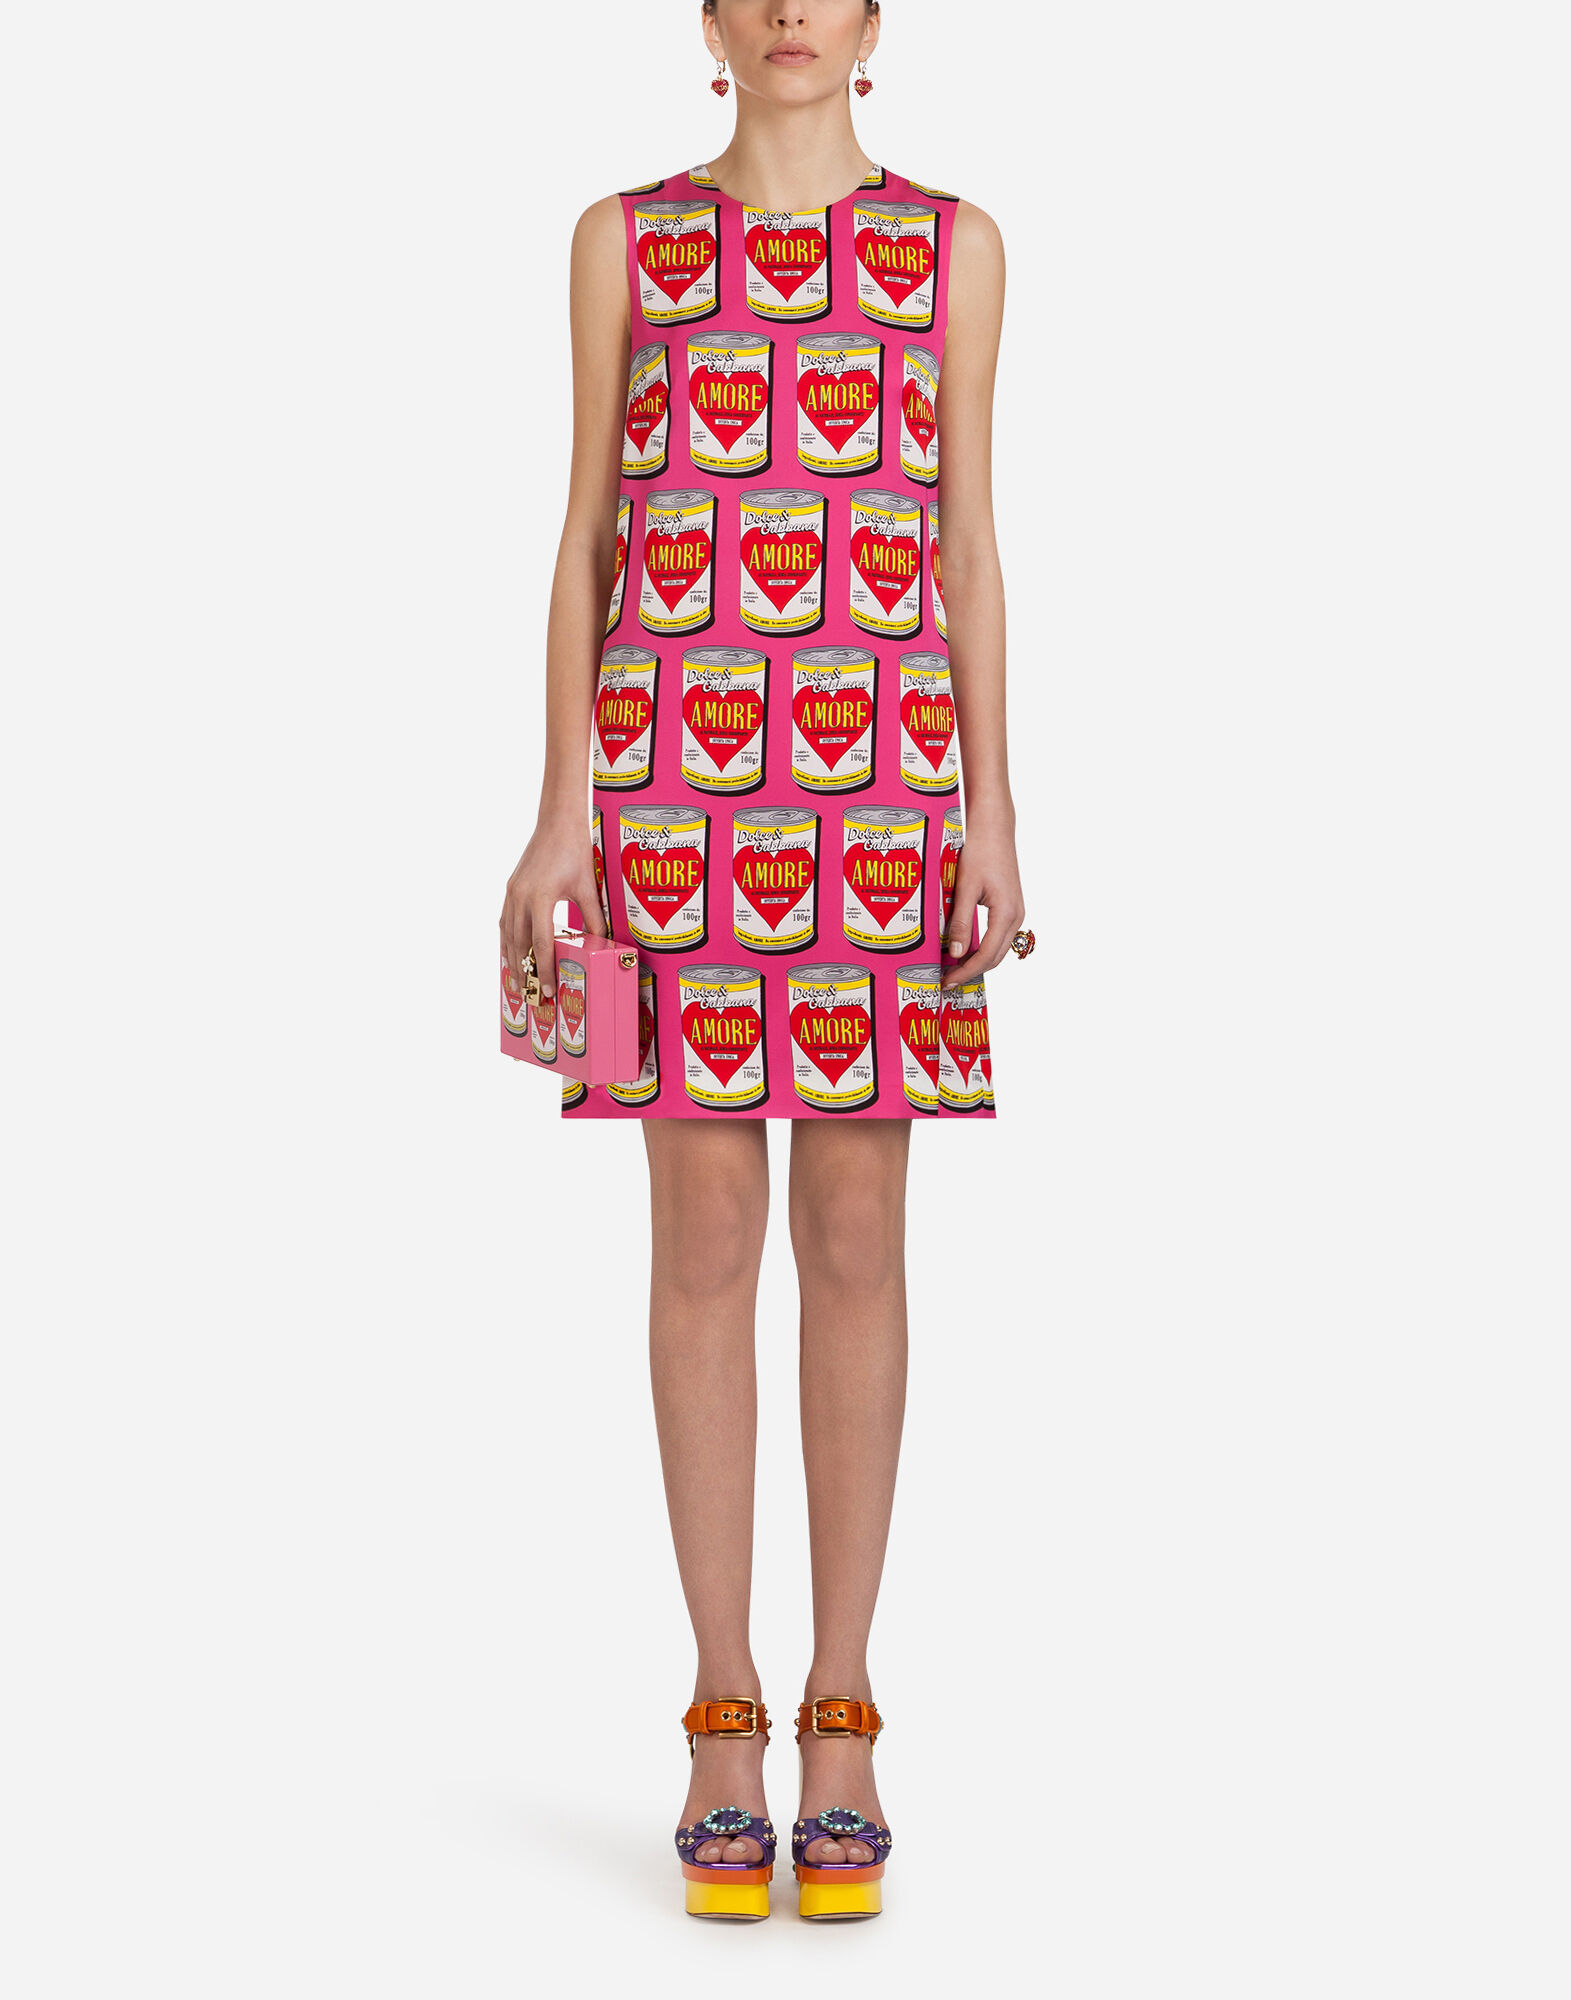 AMORE CAN A-LINE PRINT DRESS